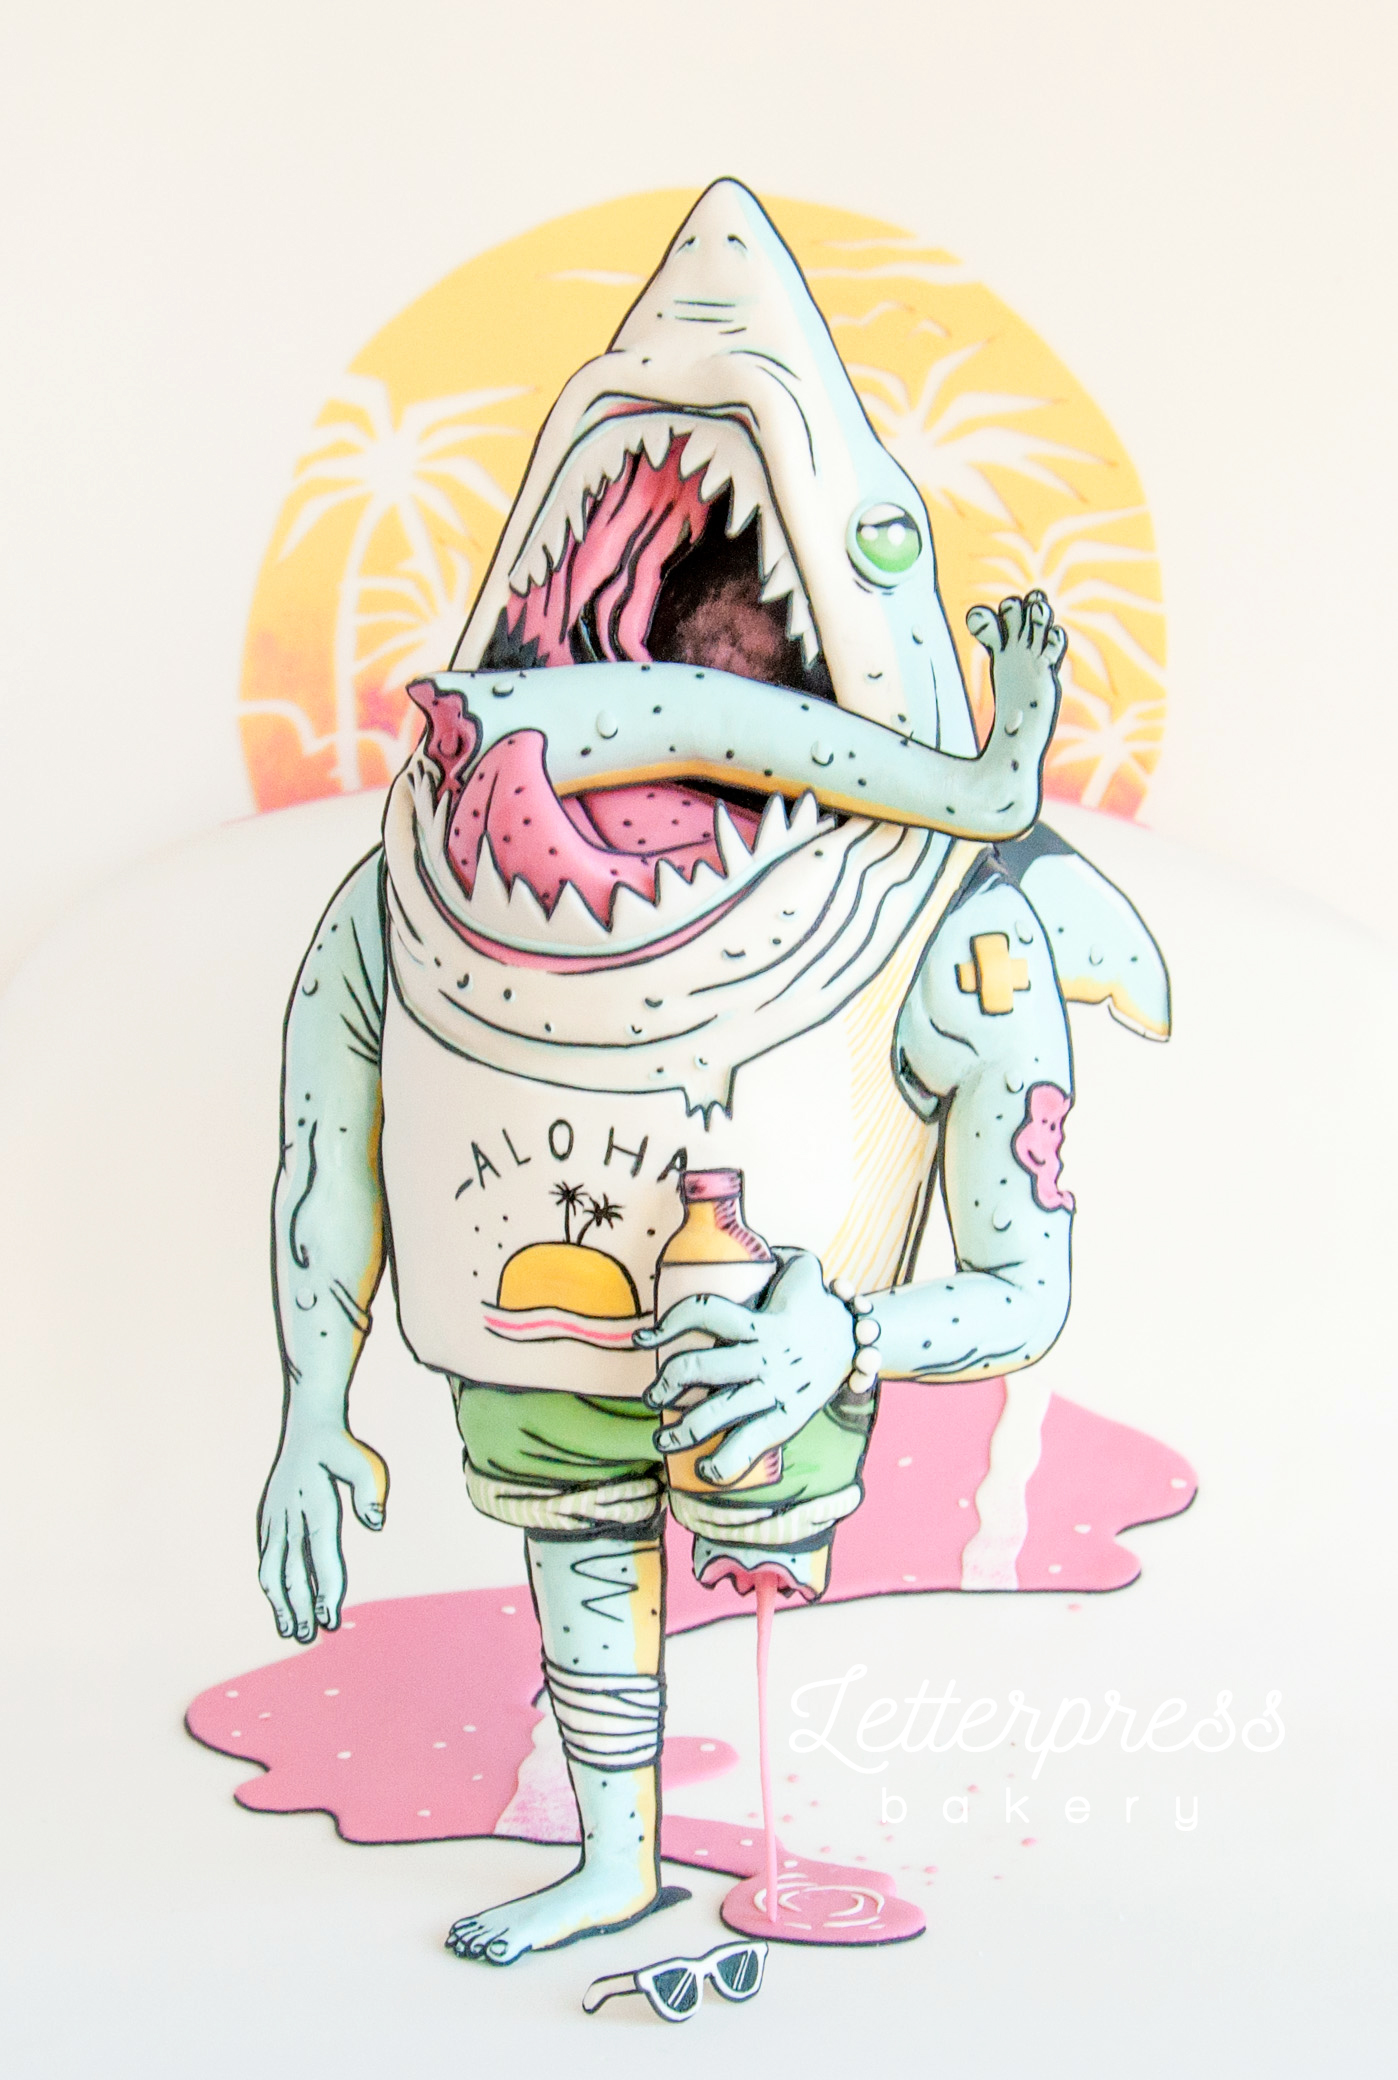 Sharkbro my 2015 Threadcakes entry